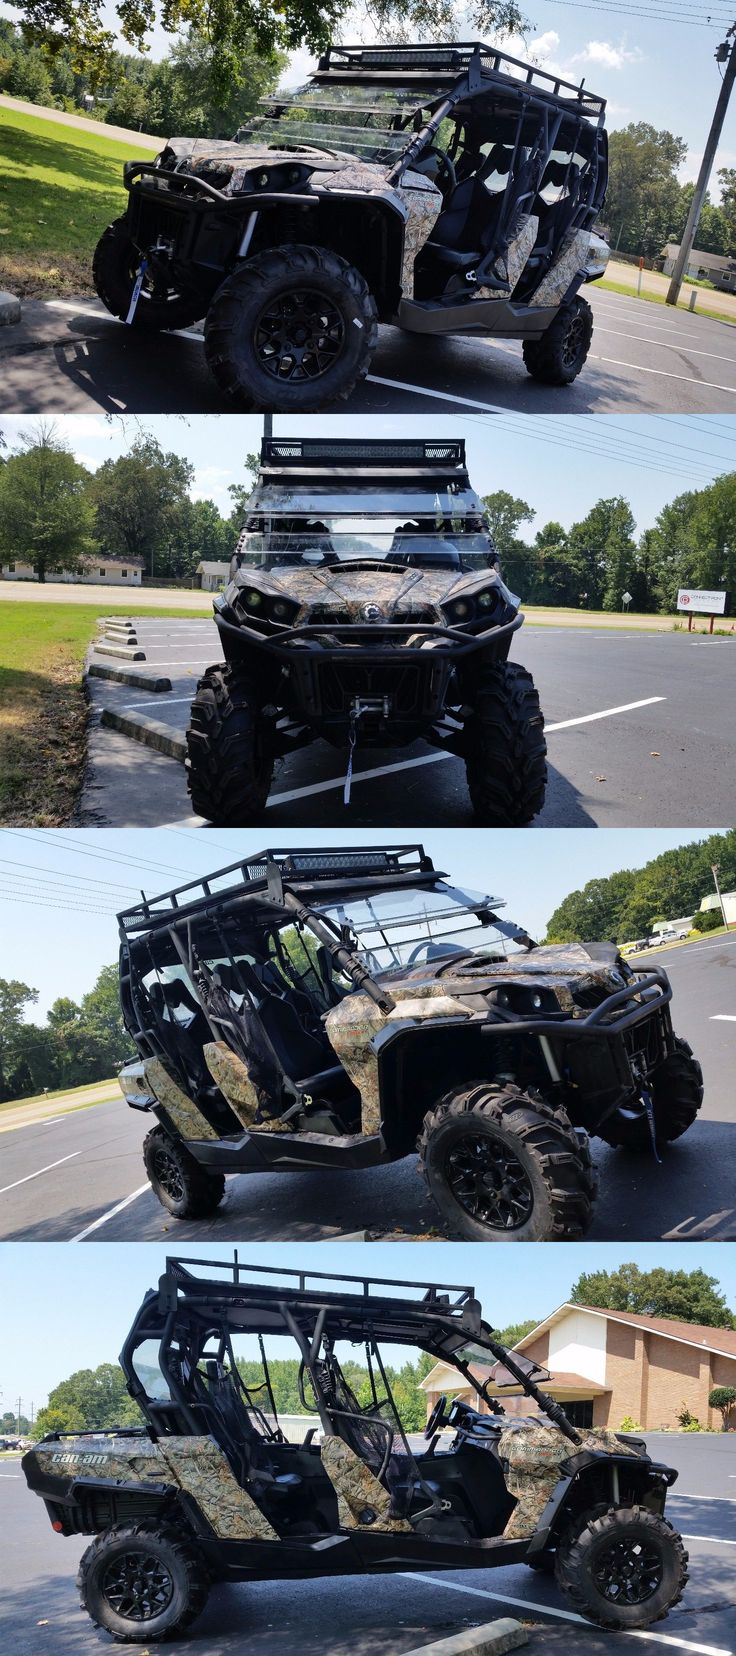 Power Sports ATVs UTVs: No Reserve Can Am Commander 1000 Xt Max Crew Sxs Utv 4X4 4 Seater Used Bike -> BUY IT NOW ONLY: $4550 on eBay!